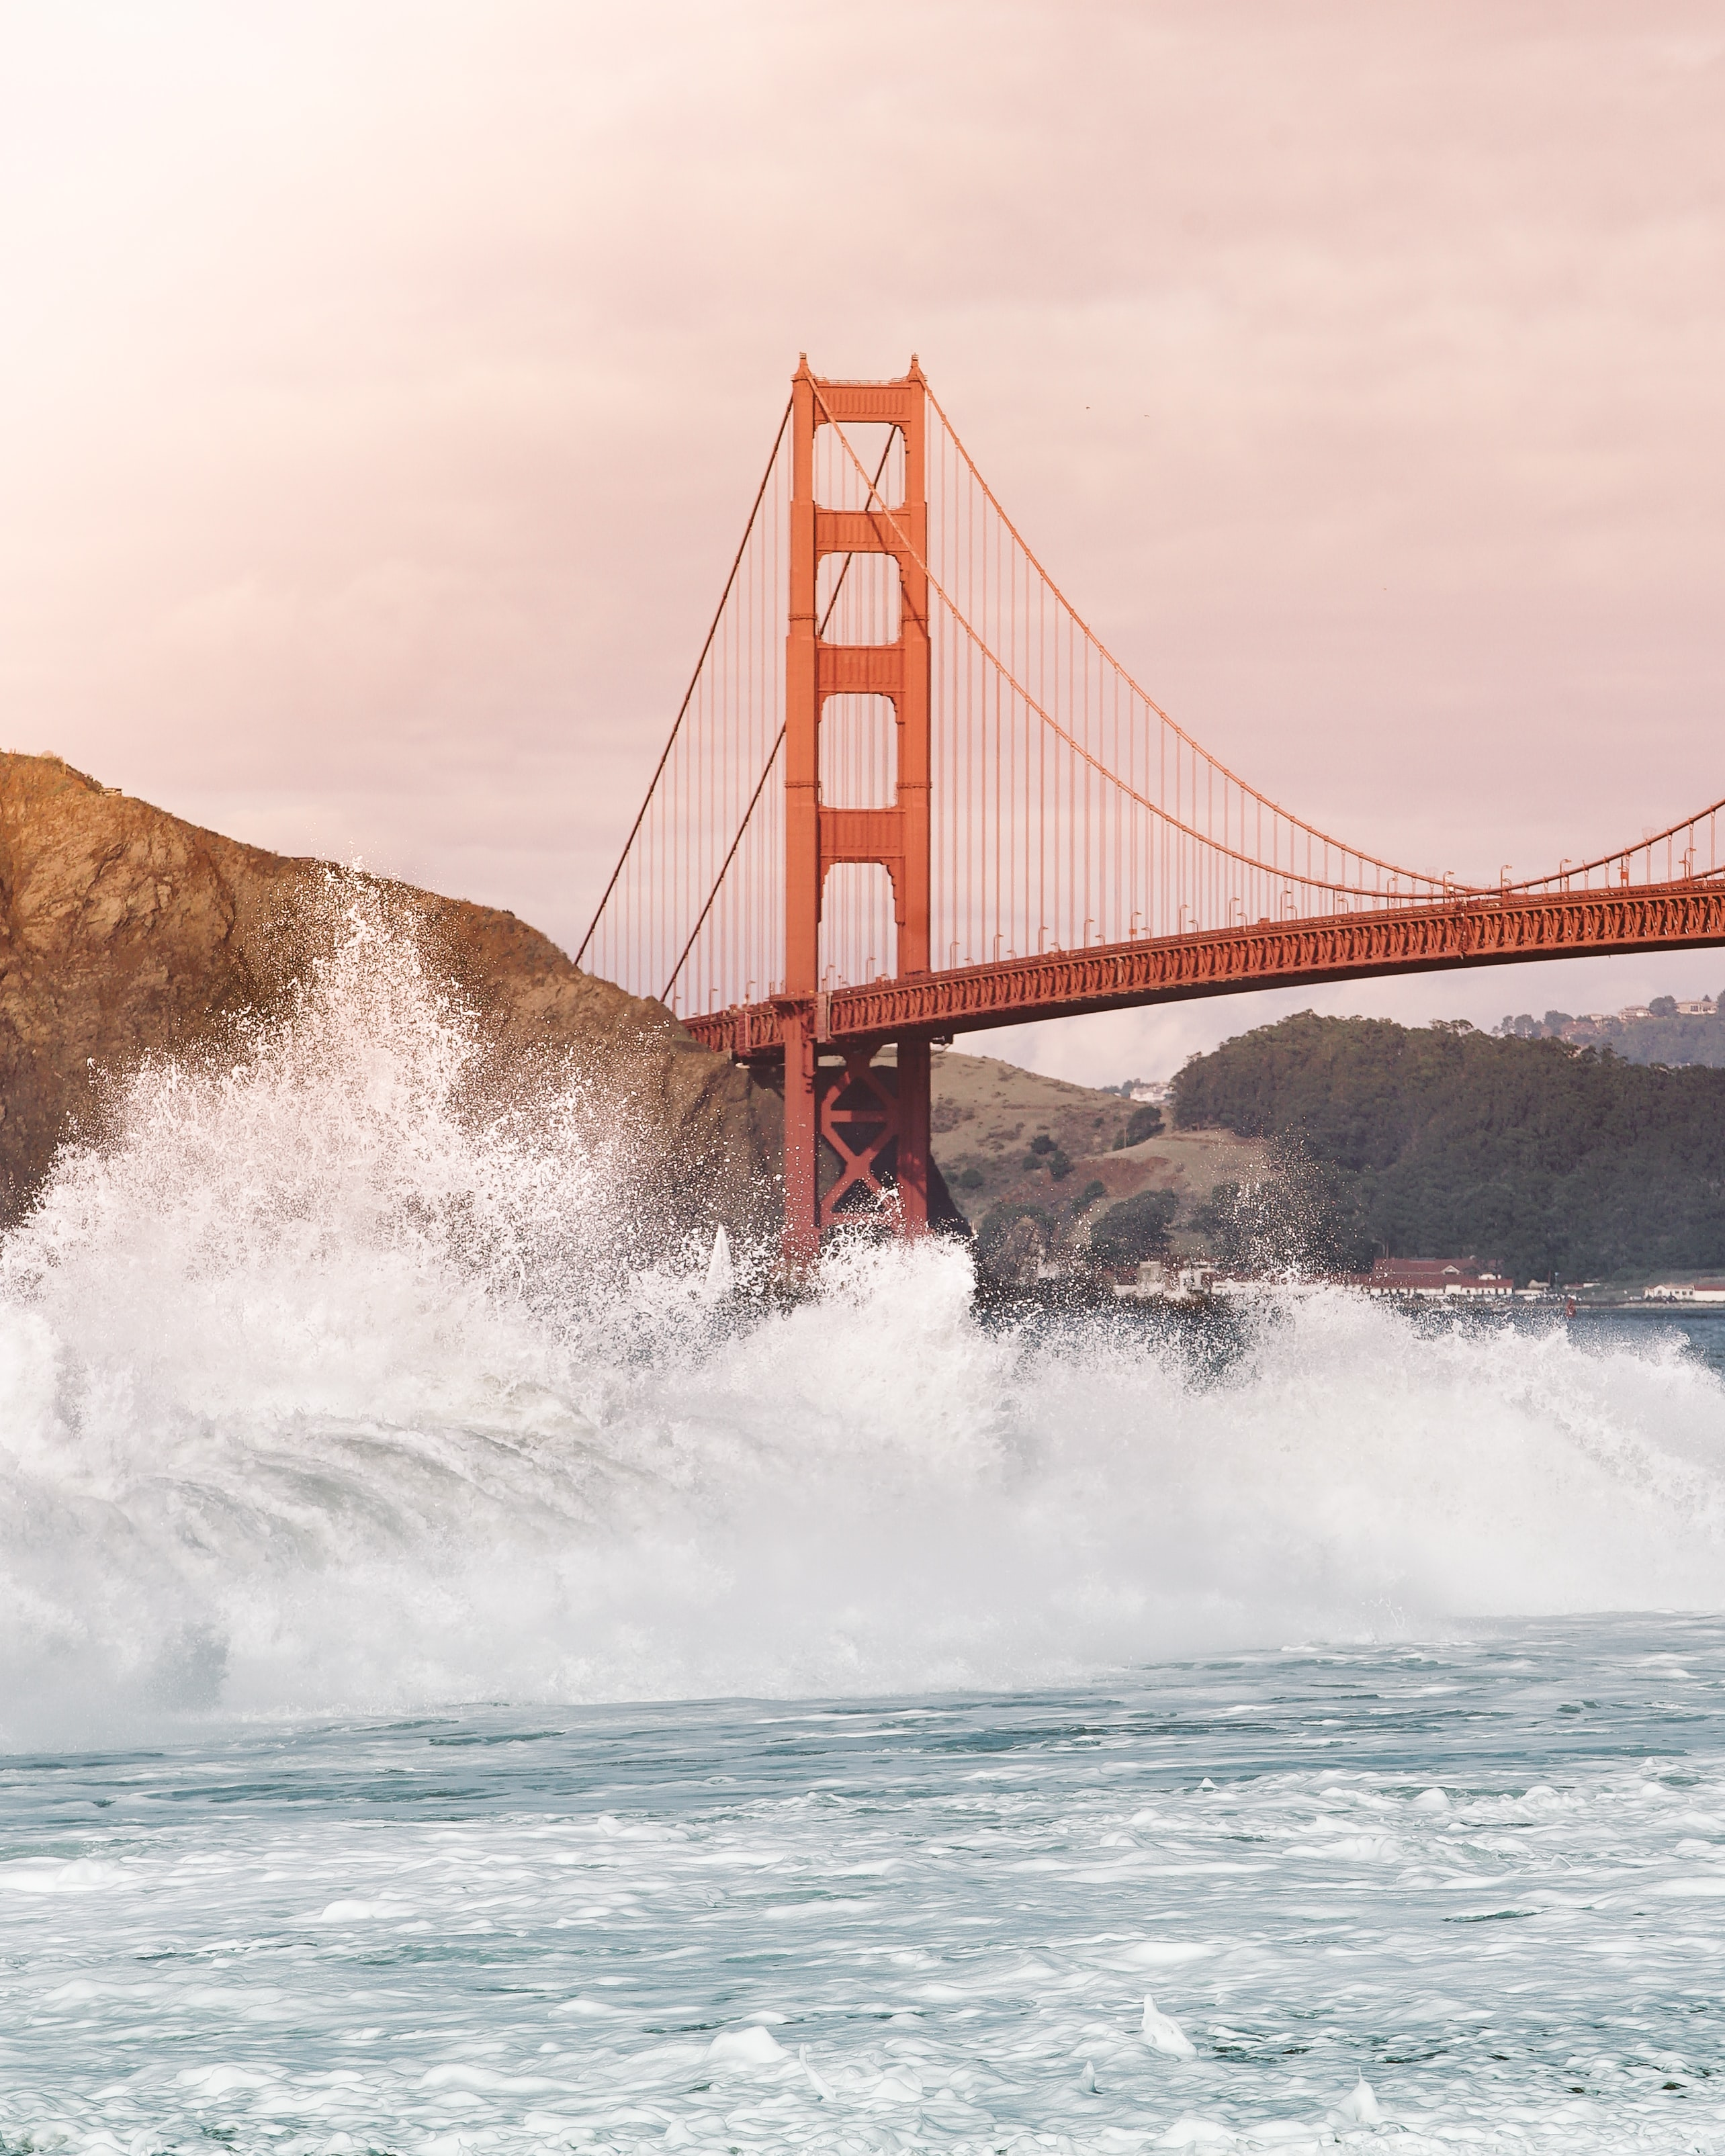 Large waves splashing near the Golden Gate bridge at Baker Beach